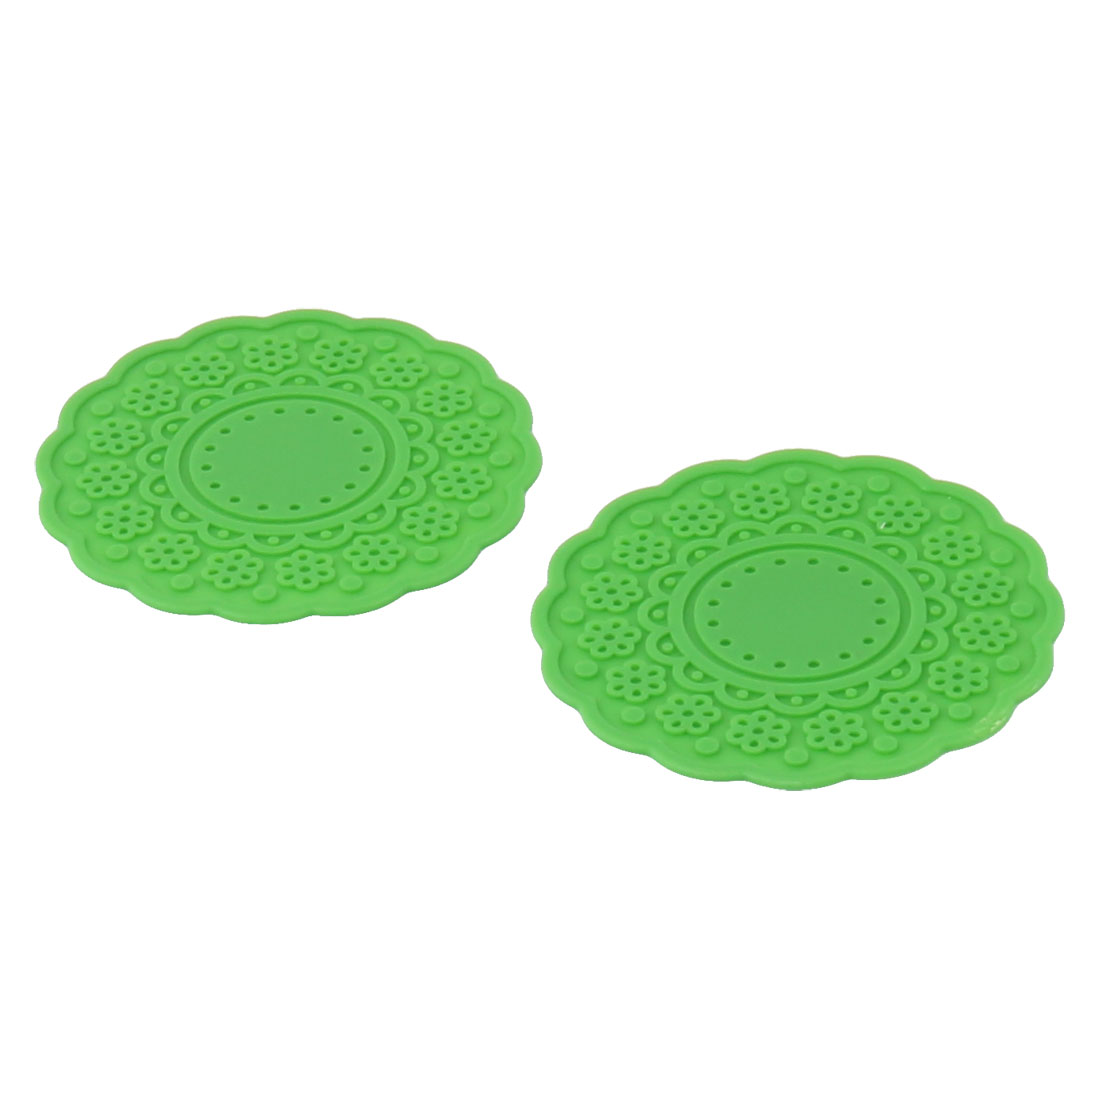 Restaurant Flower Shaped Rubber Drinking Heat Glass Cup Coaster Mat Pad Green 2 PCS